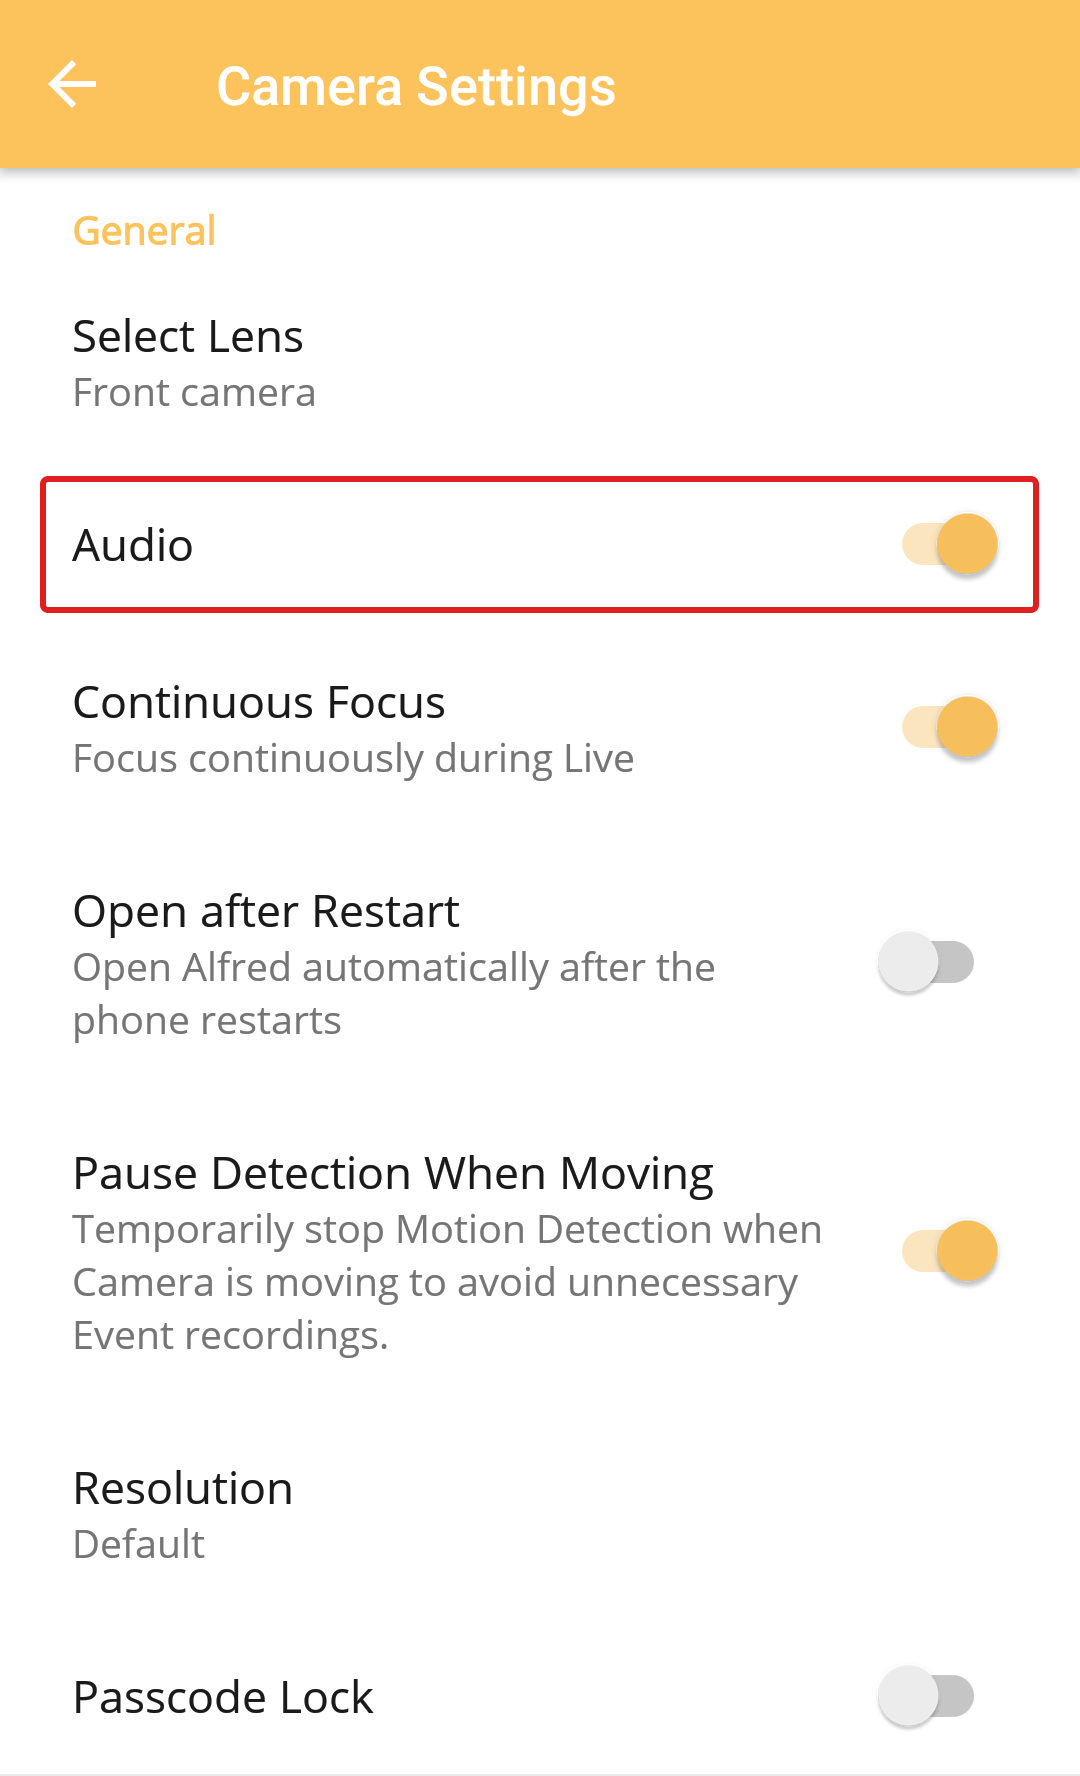 Audio_toggle_in_Camera_Settings.png